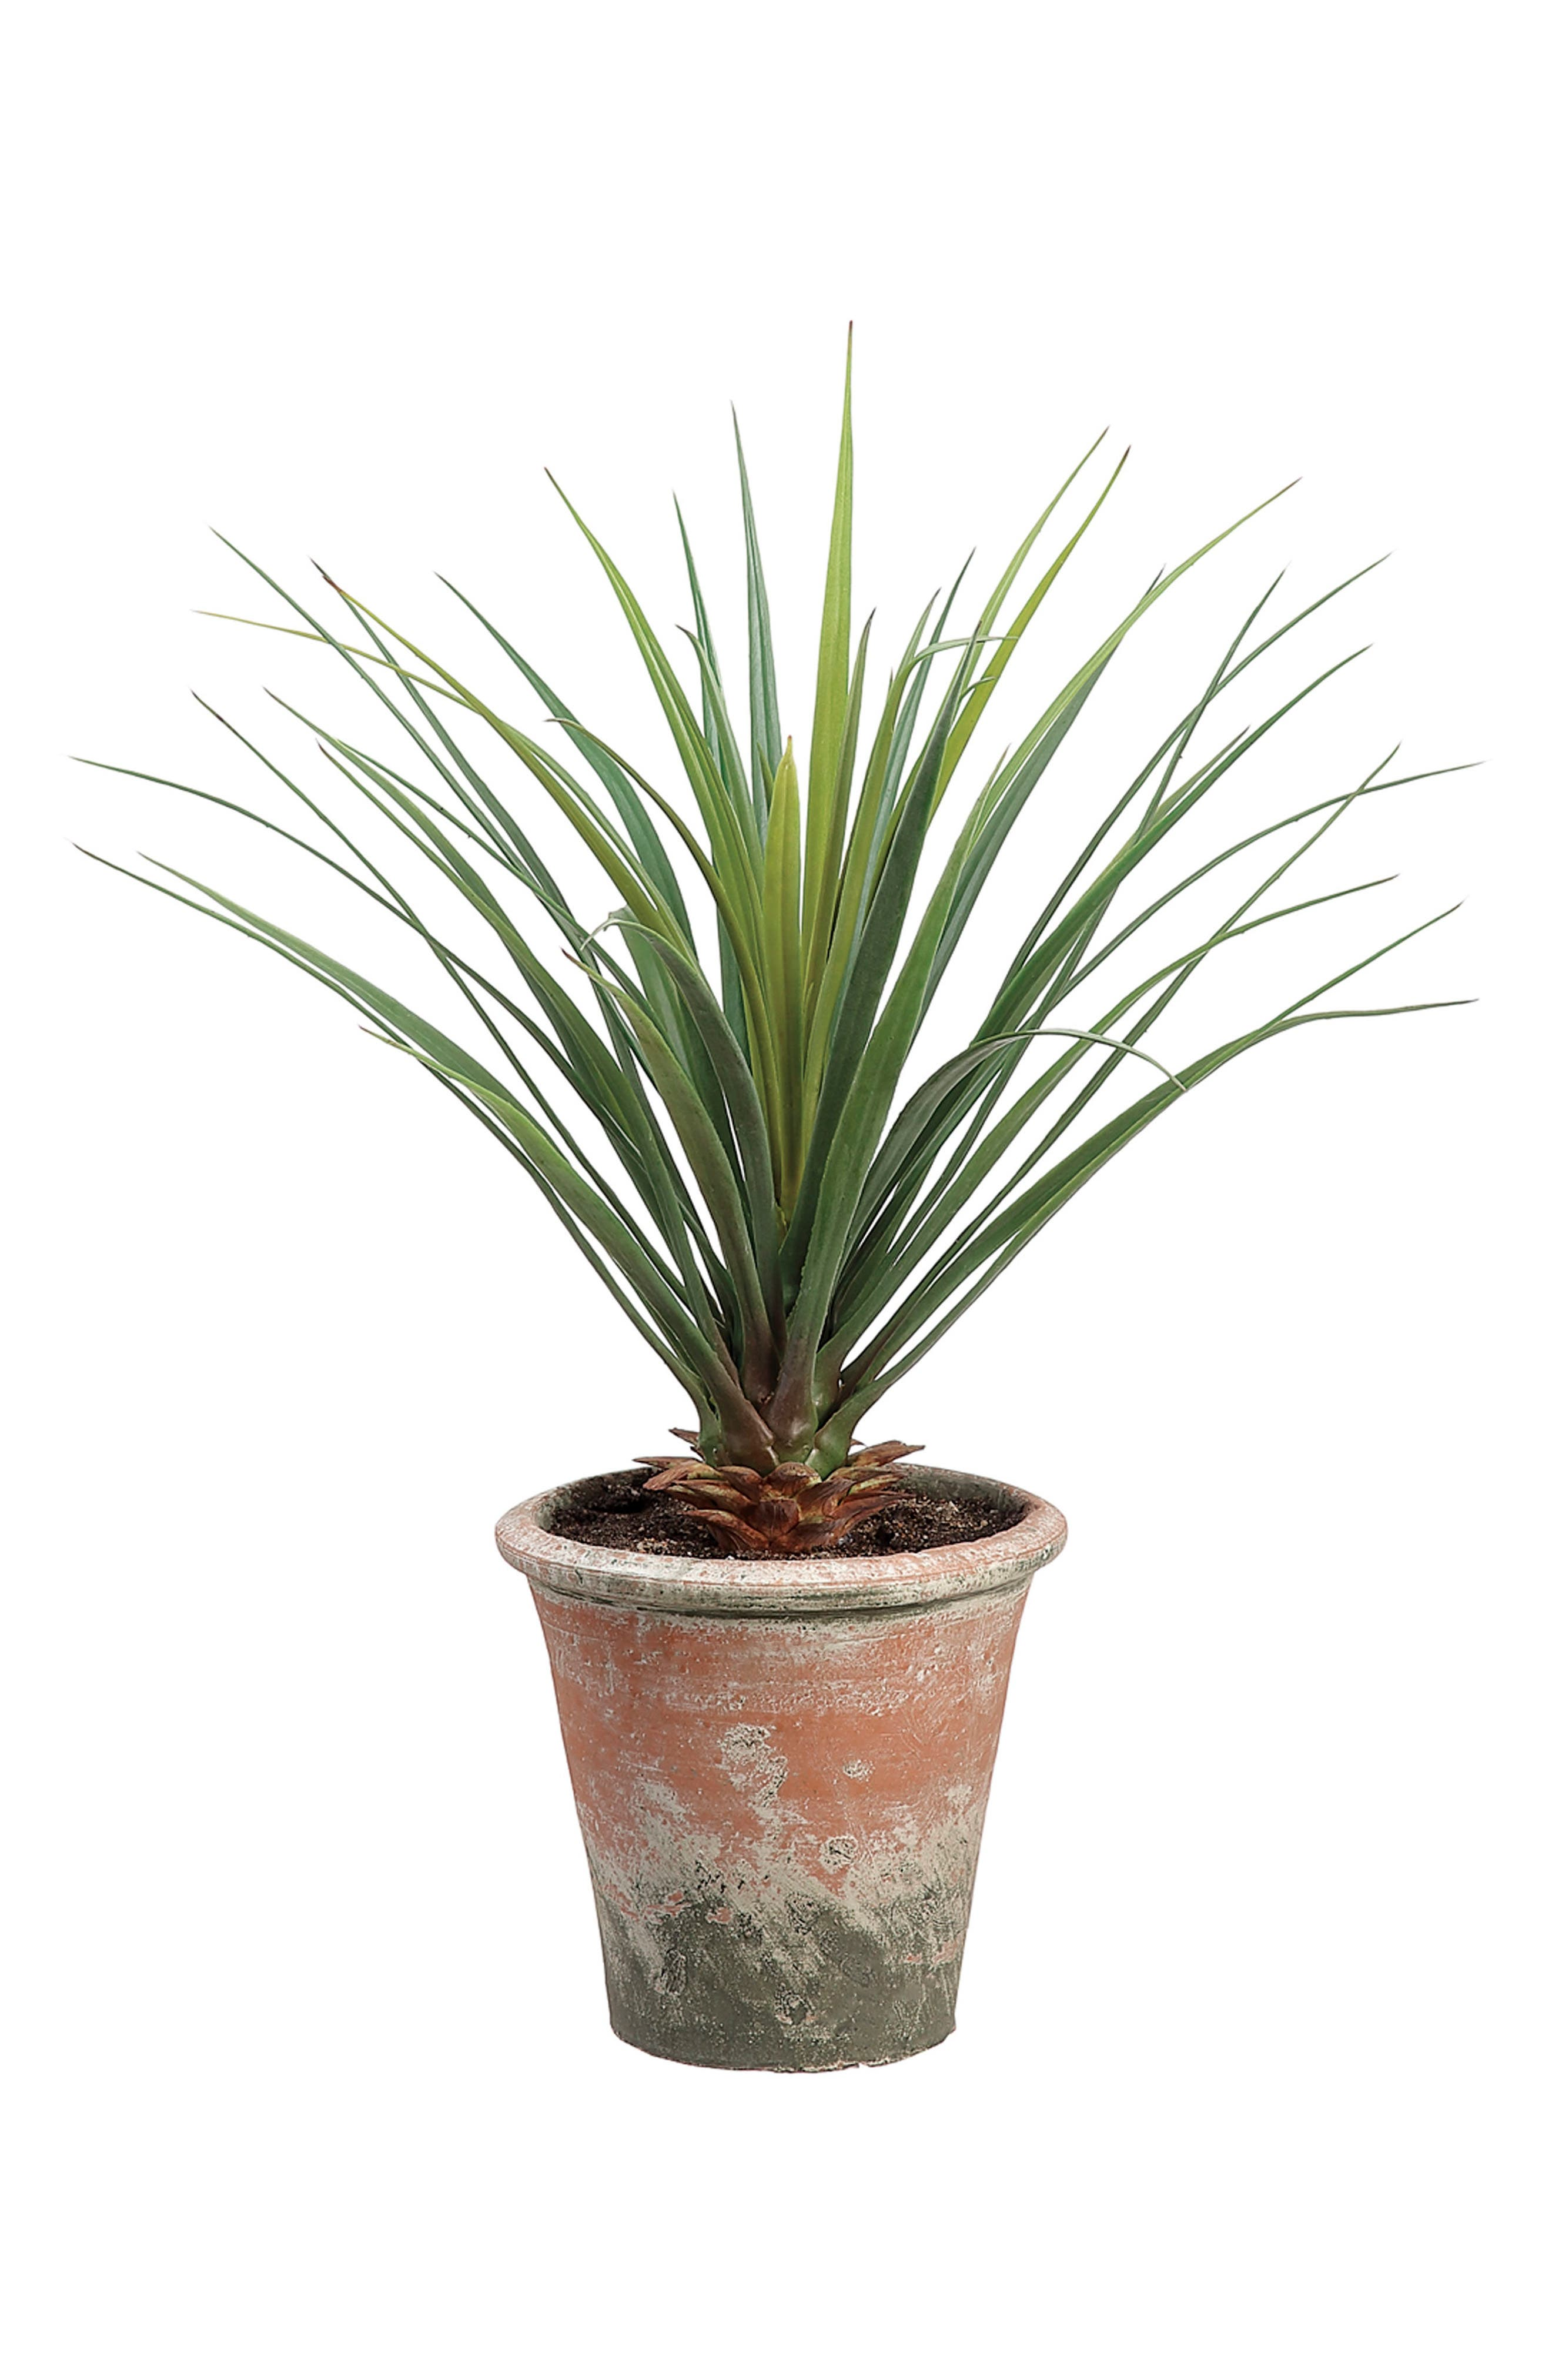 Alternate Image 1 Selected - ALLSTATE Yucca Plant Decoration